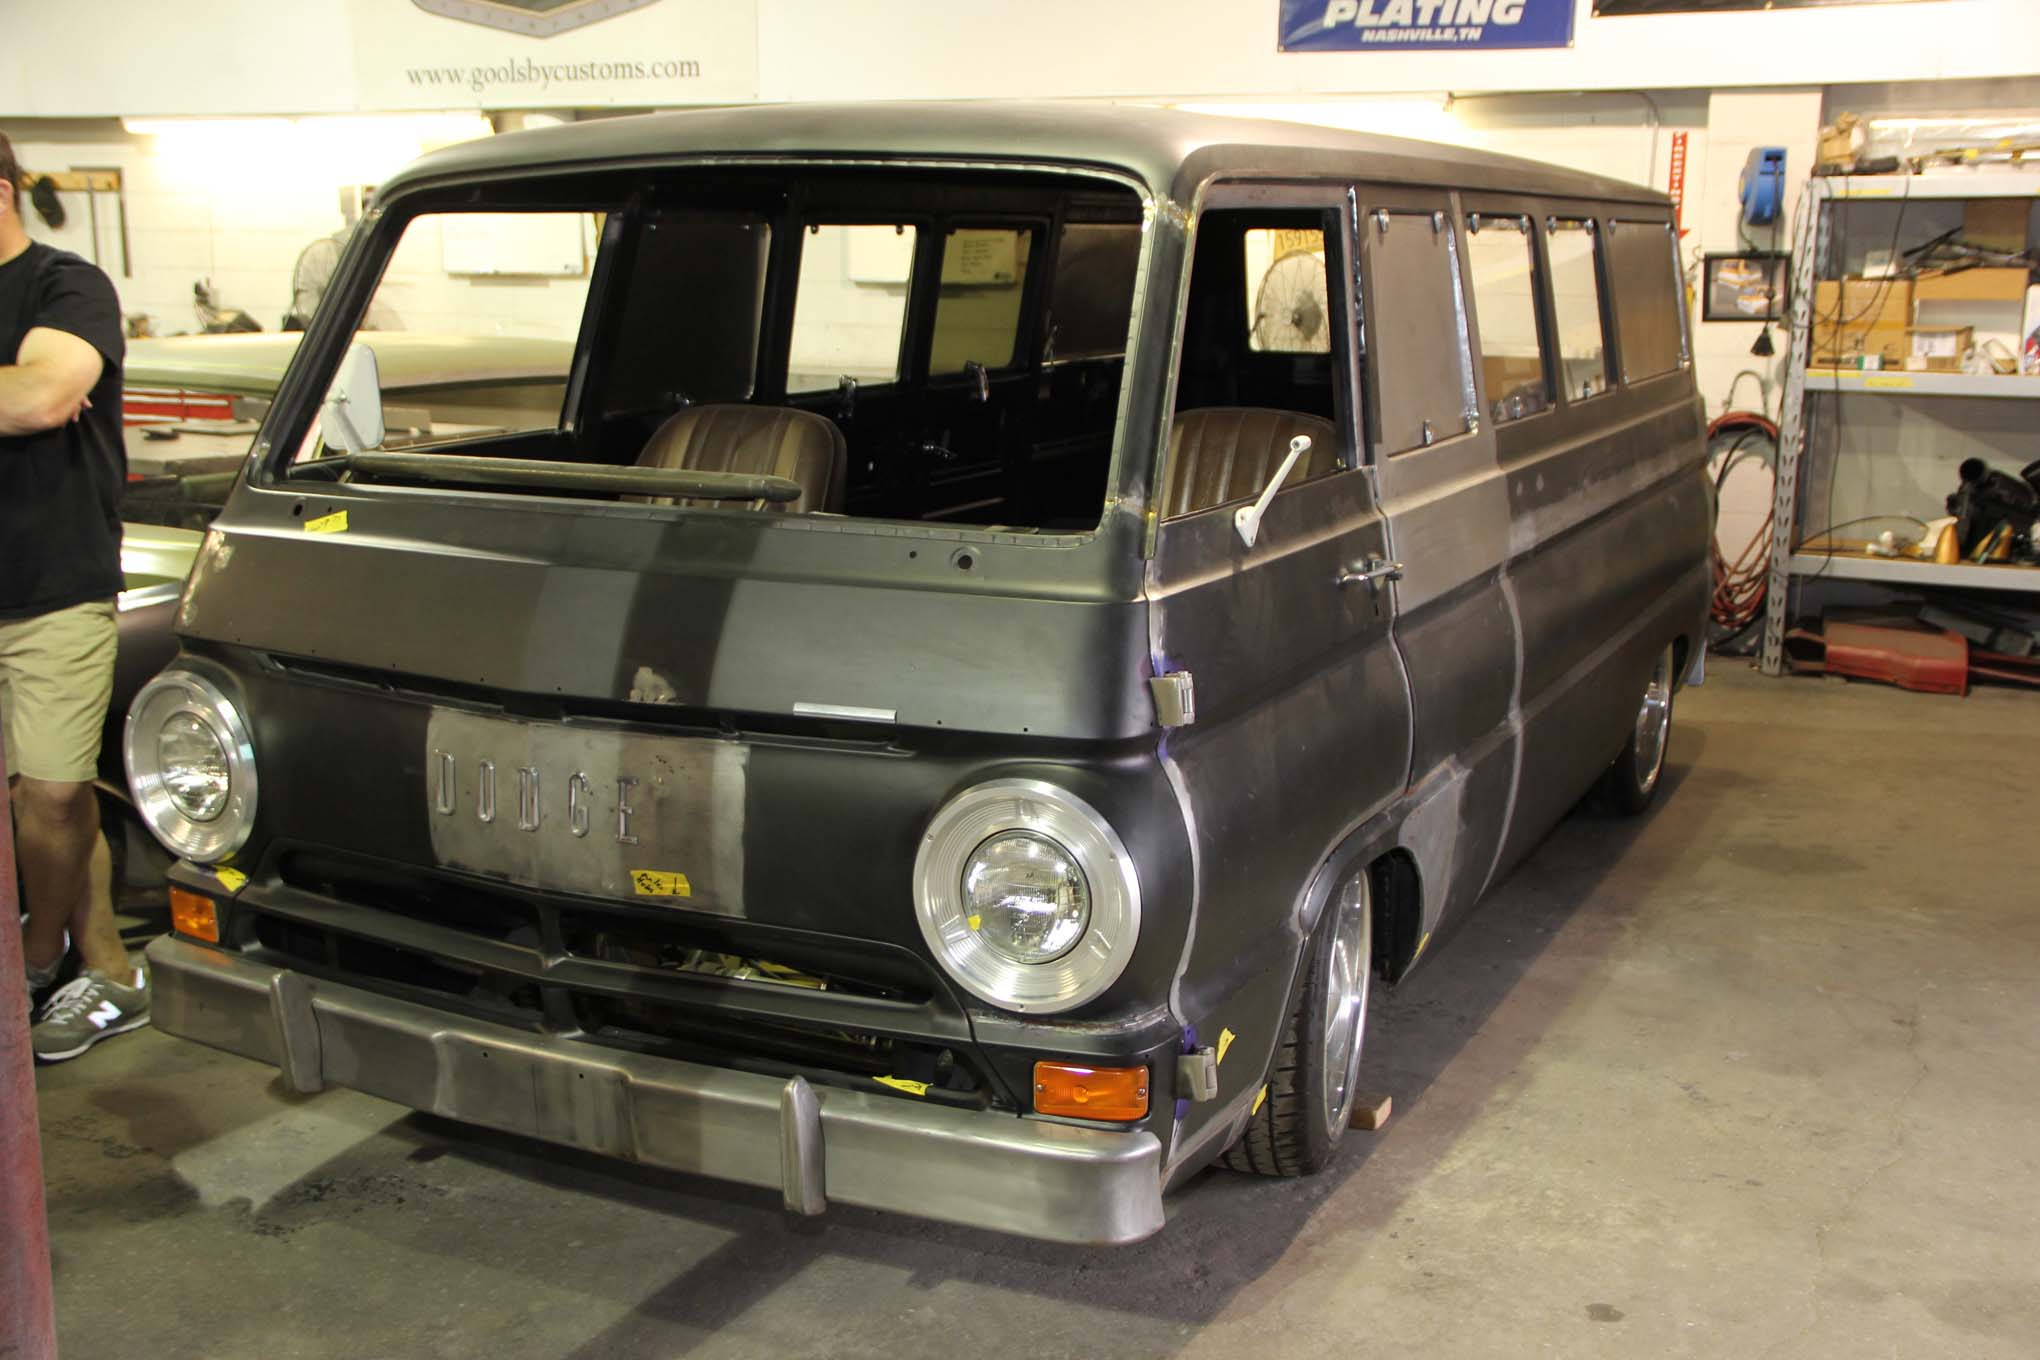 Our favorite was this 1969 Dodge A108 van. The list of modifications is long so we will point out that all the windows have hand-made moldings and use hardware from many other vans. The result is a VW-Safari van vibe.